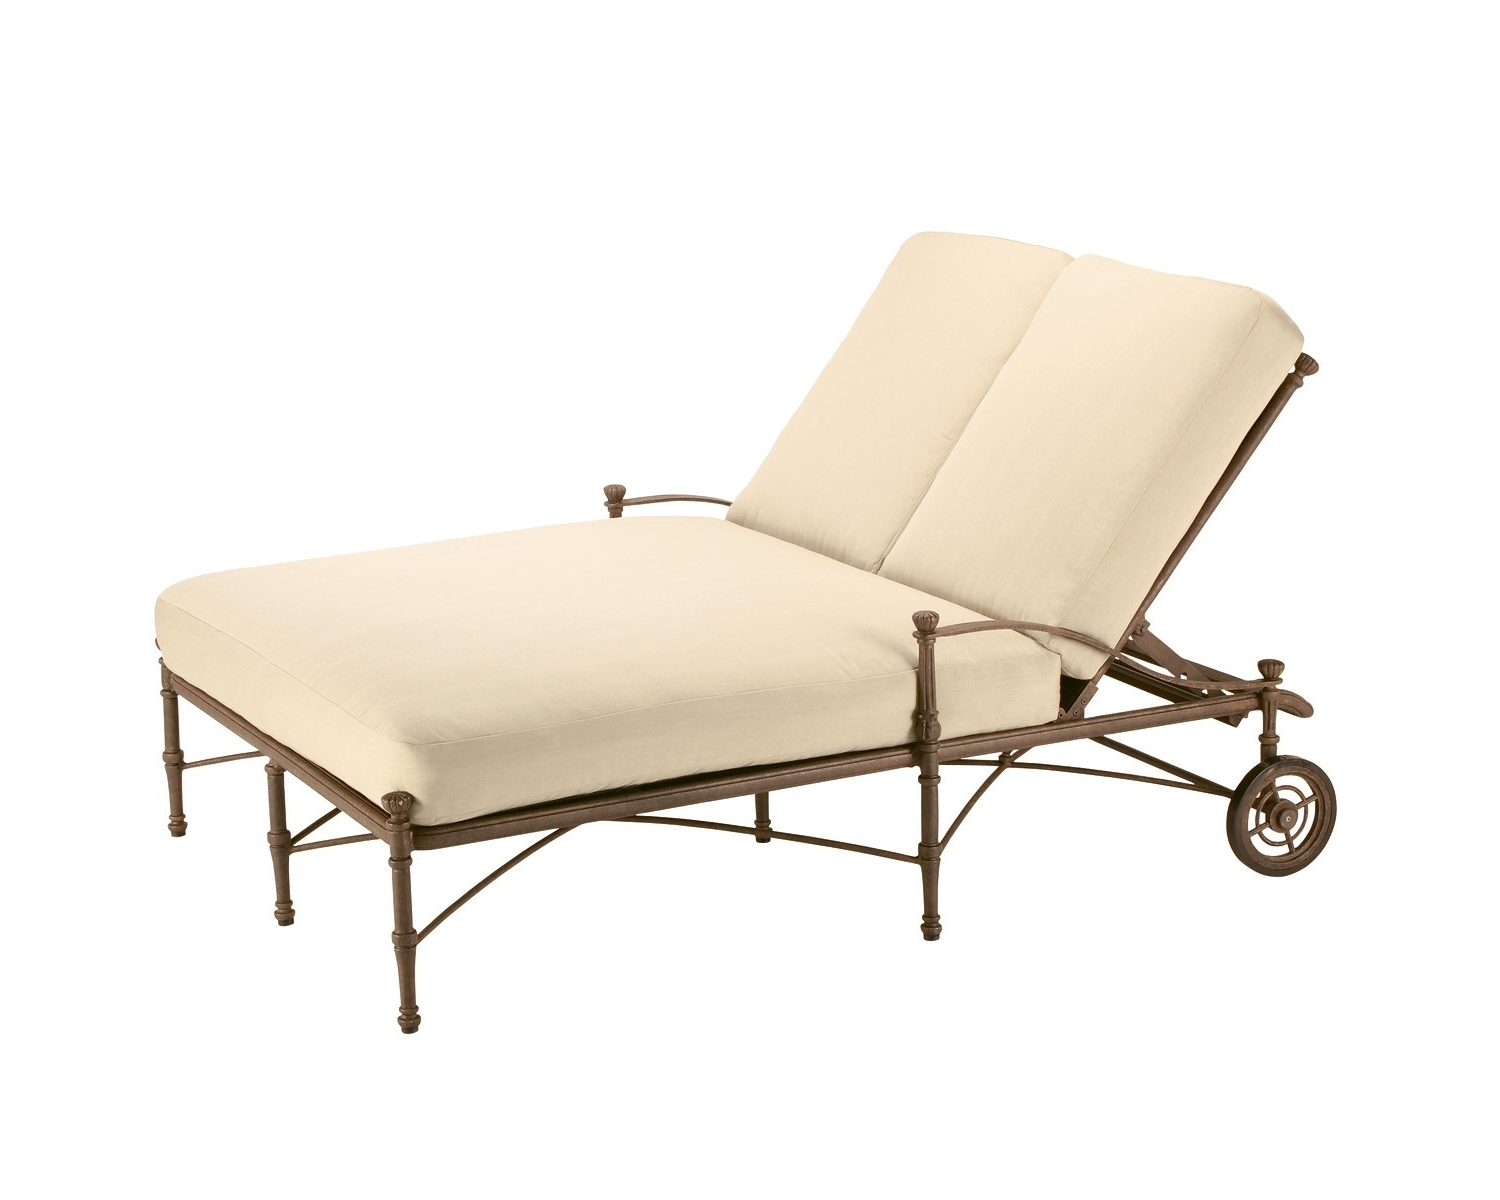 Fashionable Outdoor Patio Furniture Sale Sling Chaise Lounge White Outdoor Pertaining To Kettler Chaise Lounge Chairs (View 13 of 15)